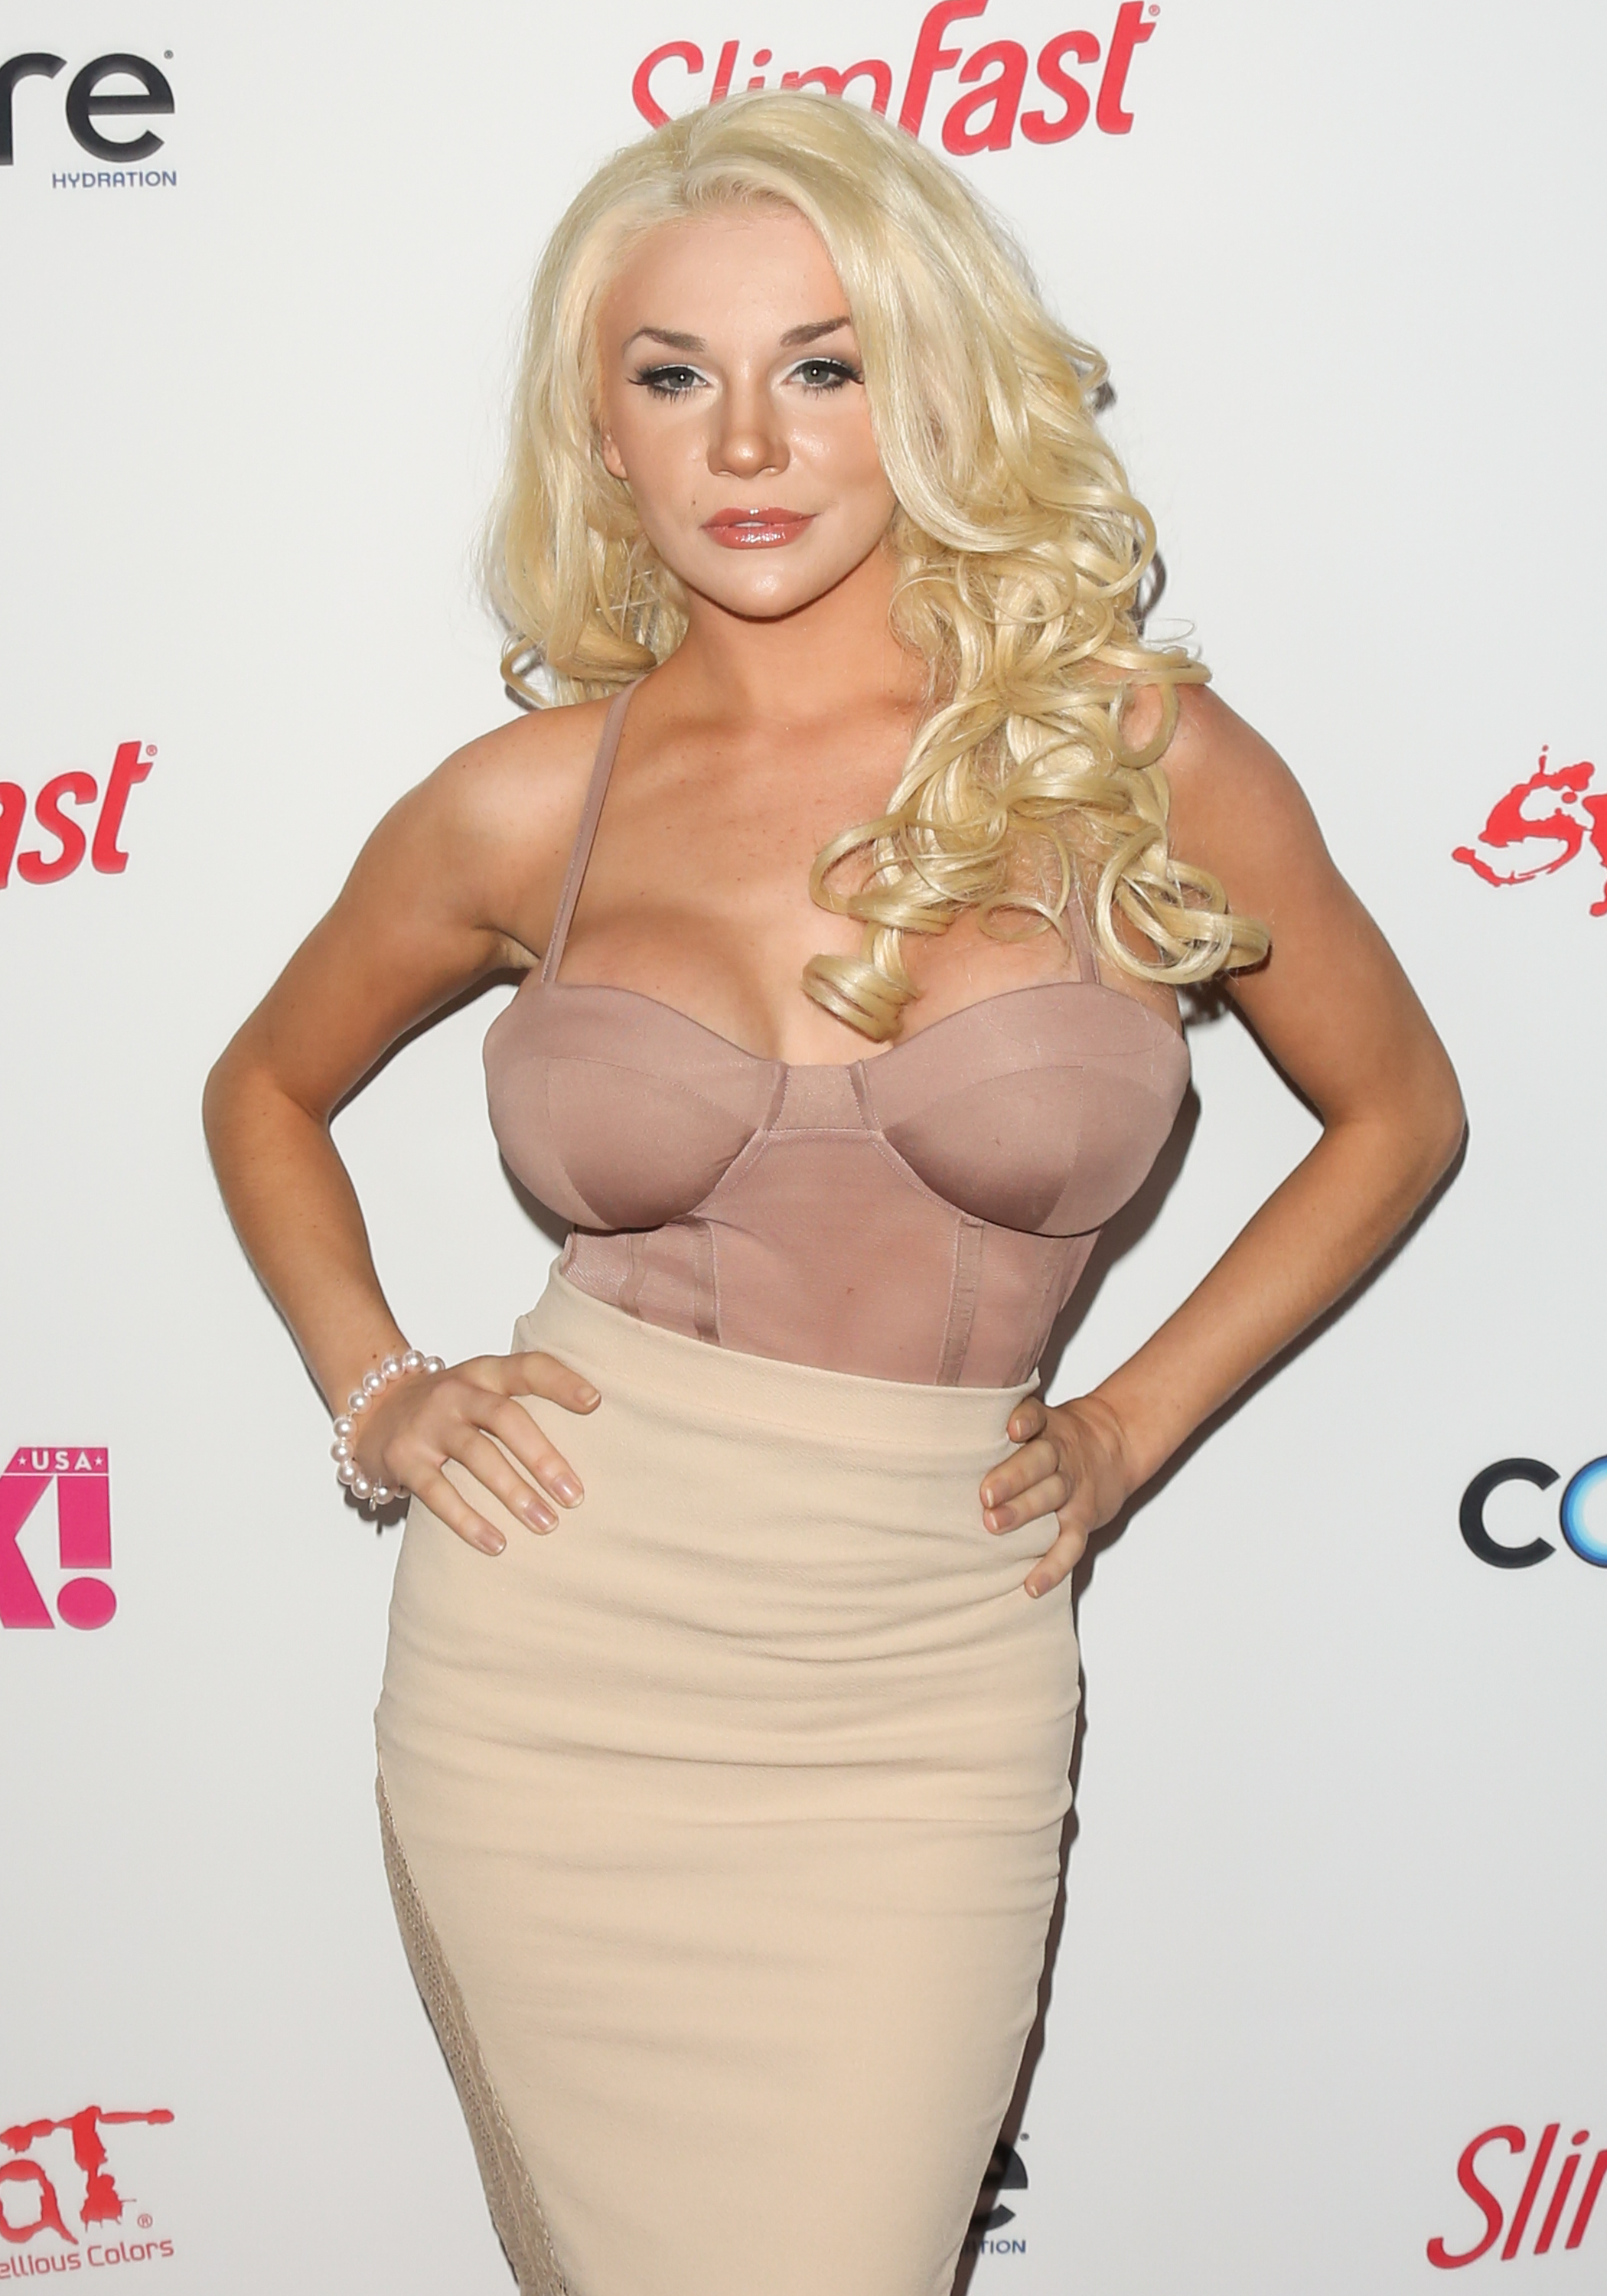 Watch Courtney stodden shows off her boobs and butt onlyfans 5 pics video video